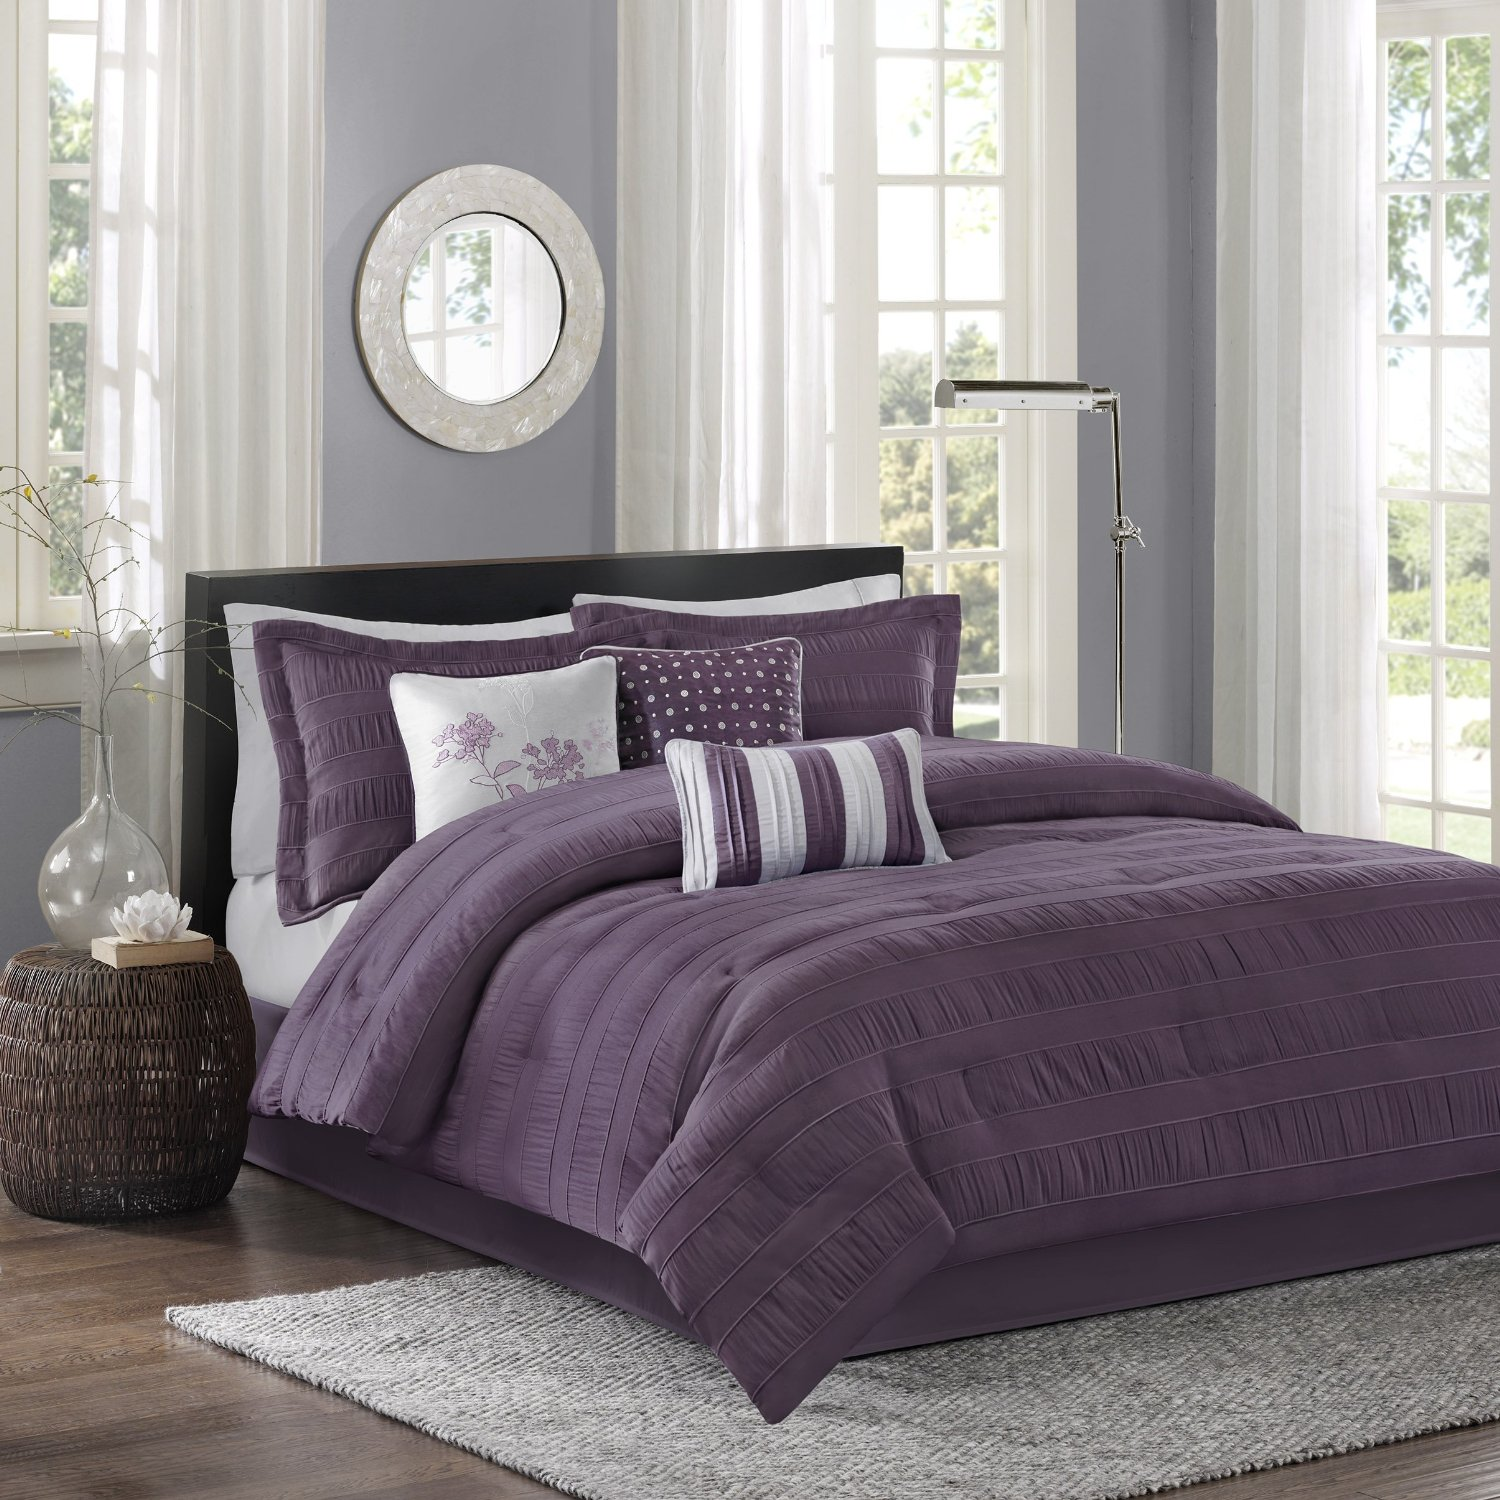 Purple Comforter Sets | Purple King Size Comforter Sets | Dark Purple Comforter Sets